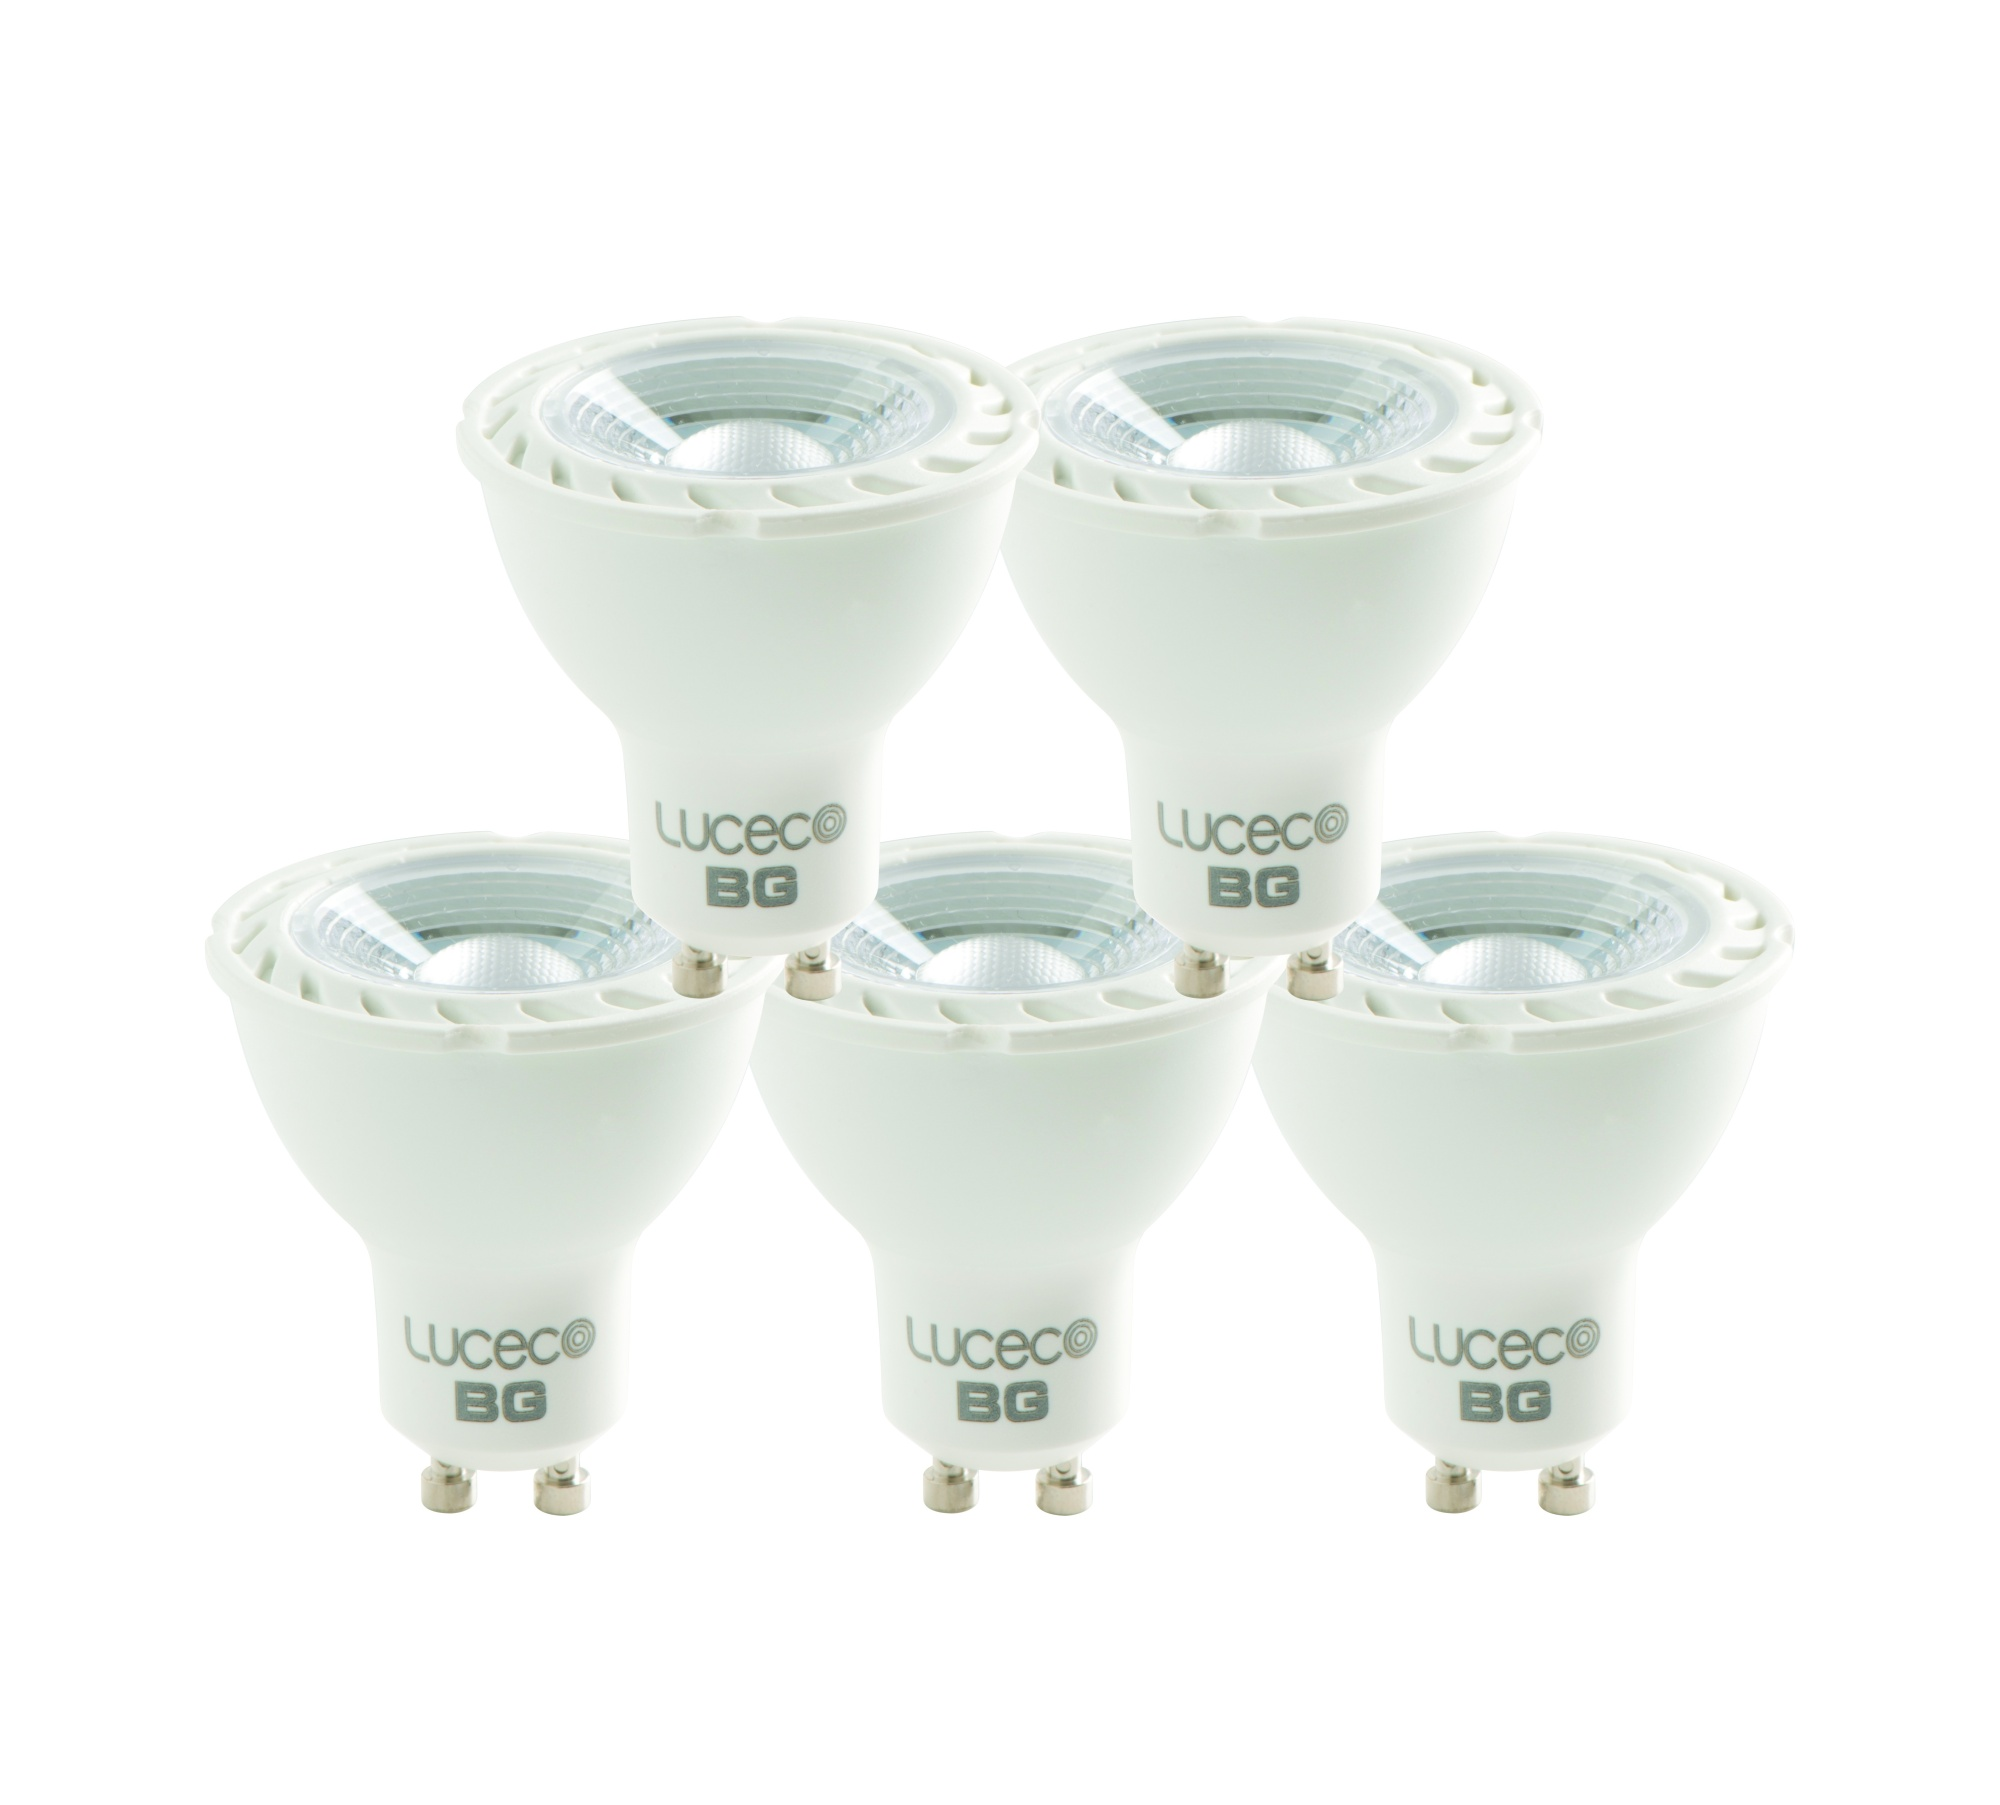 Luceco Led Gu10 Dimmable 4000k 5w 370lm Bulb Natural Light Lamp Five Pack Ebay